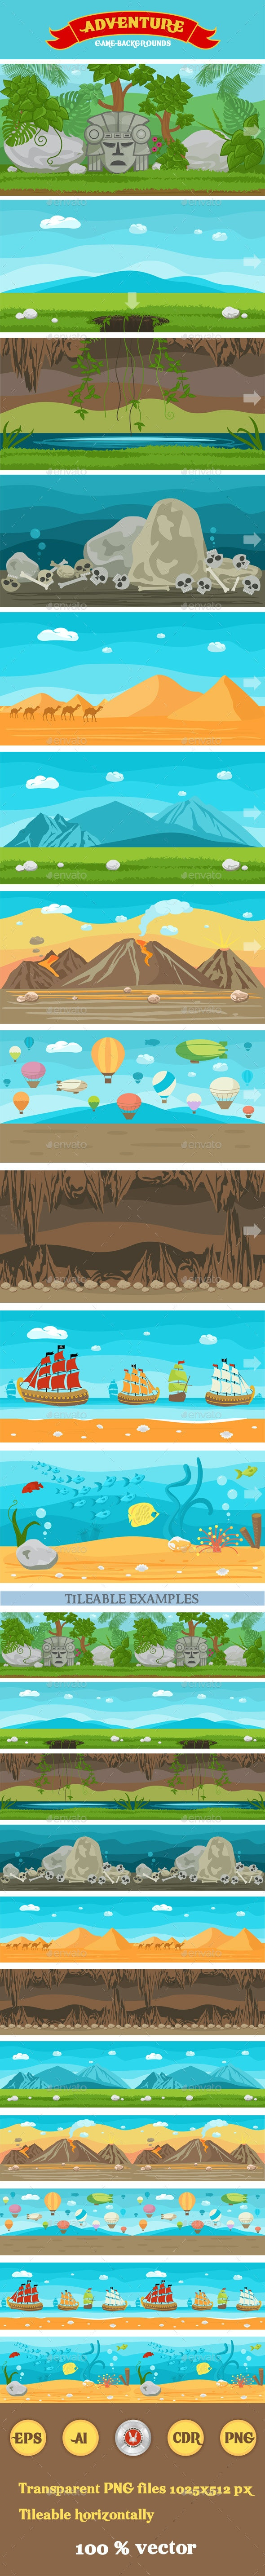 11 Adventure Themed Game Backgrounds - Backgrounds Game Assets